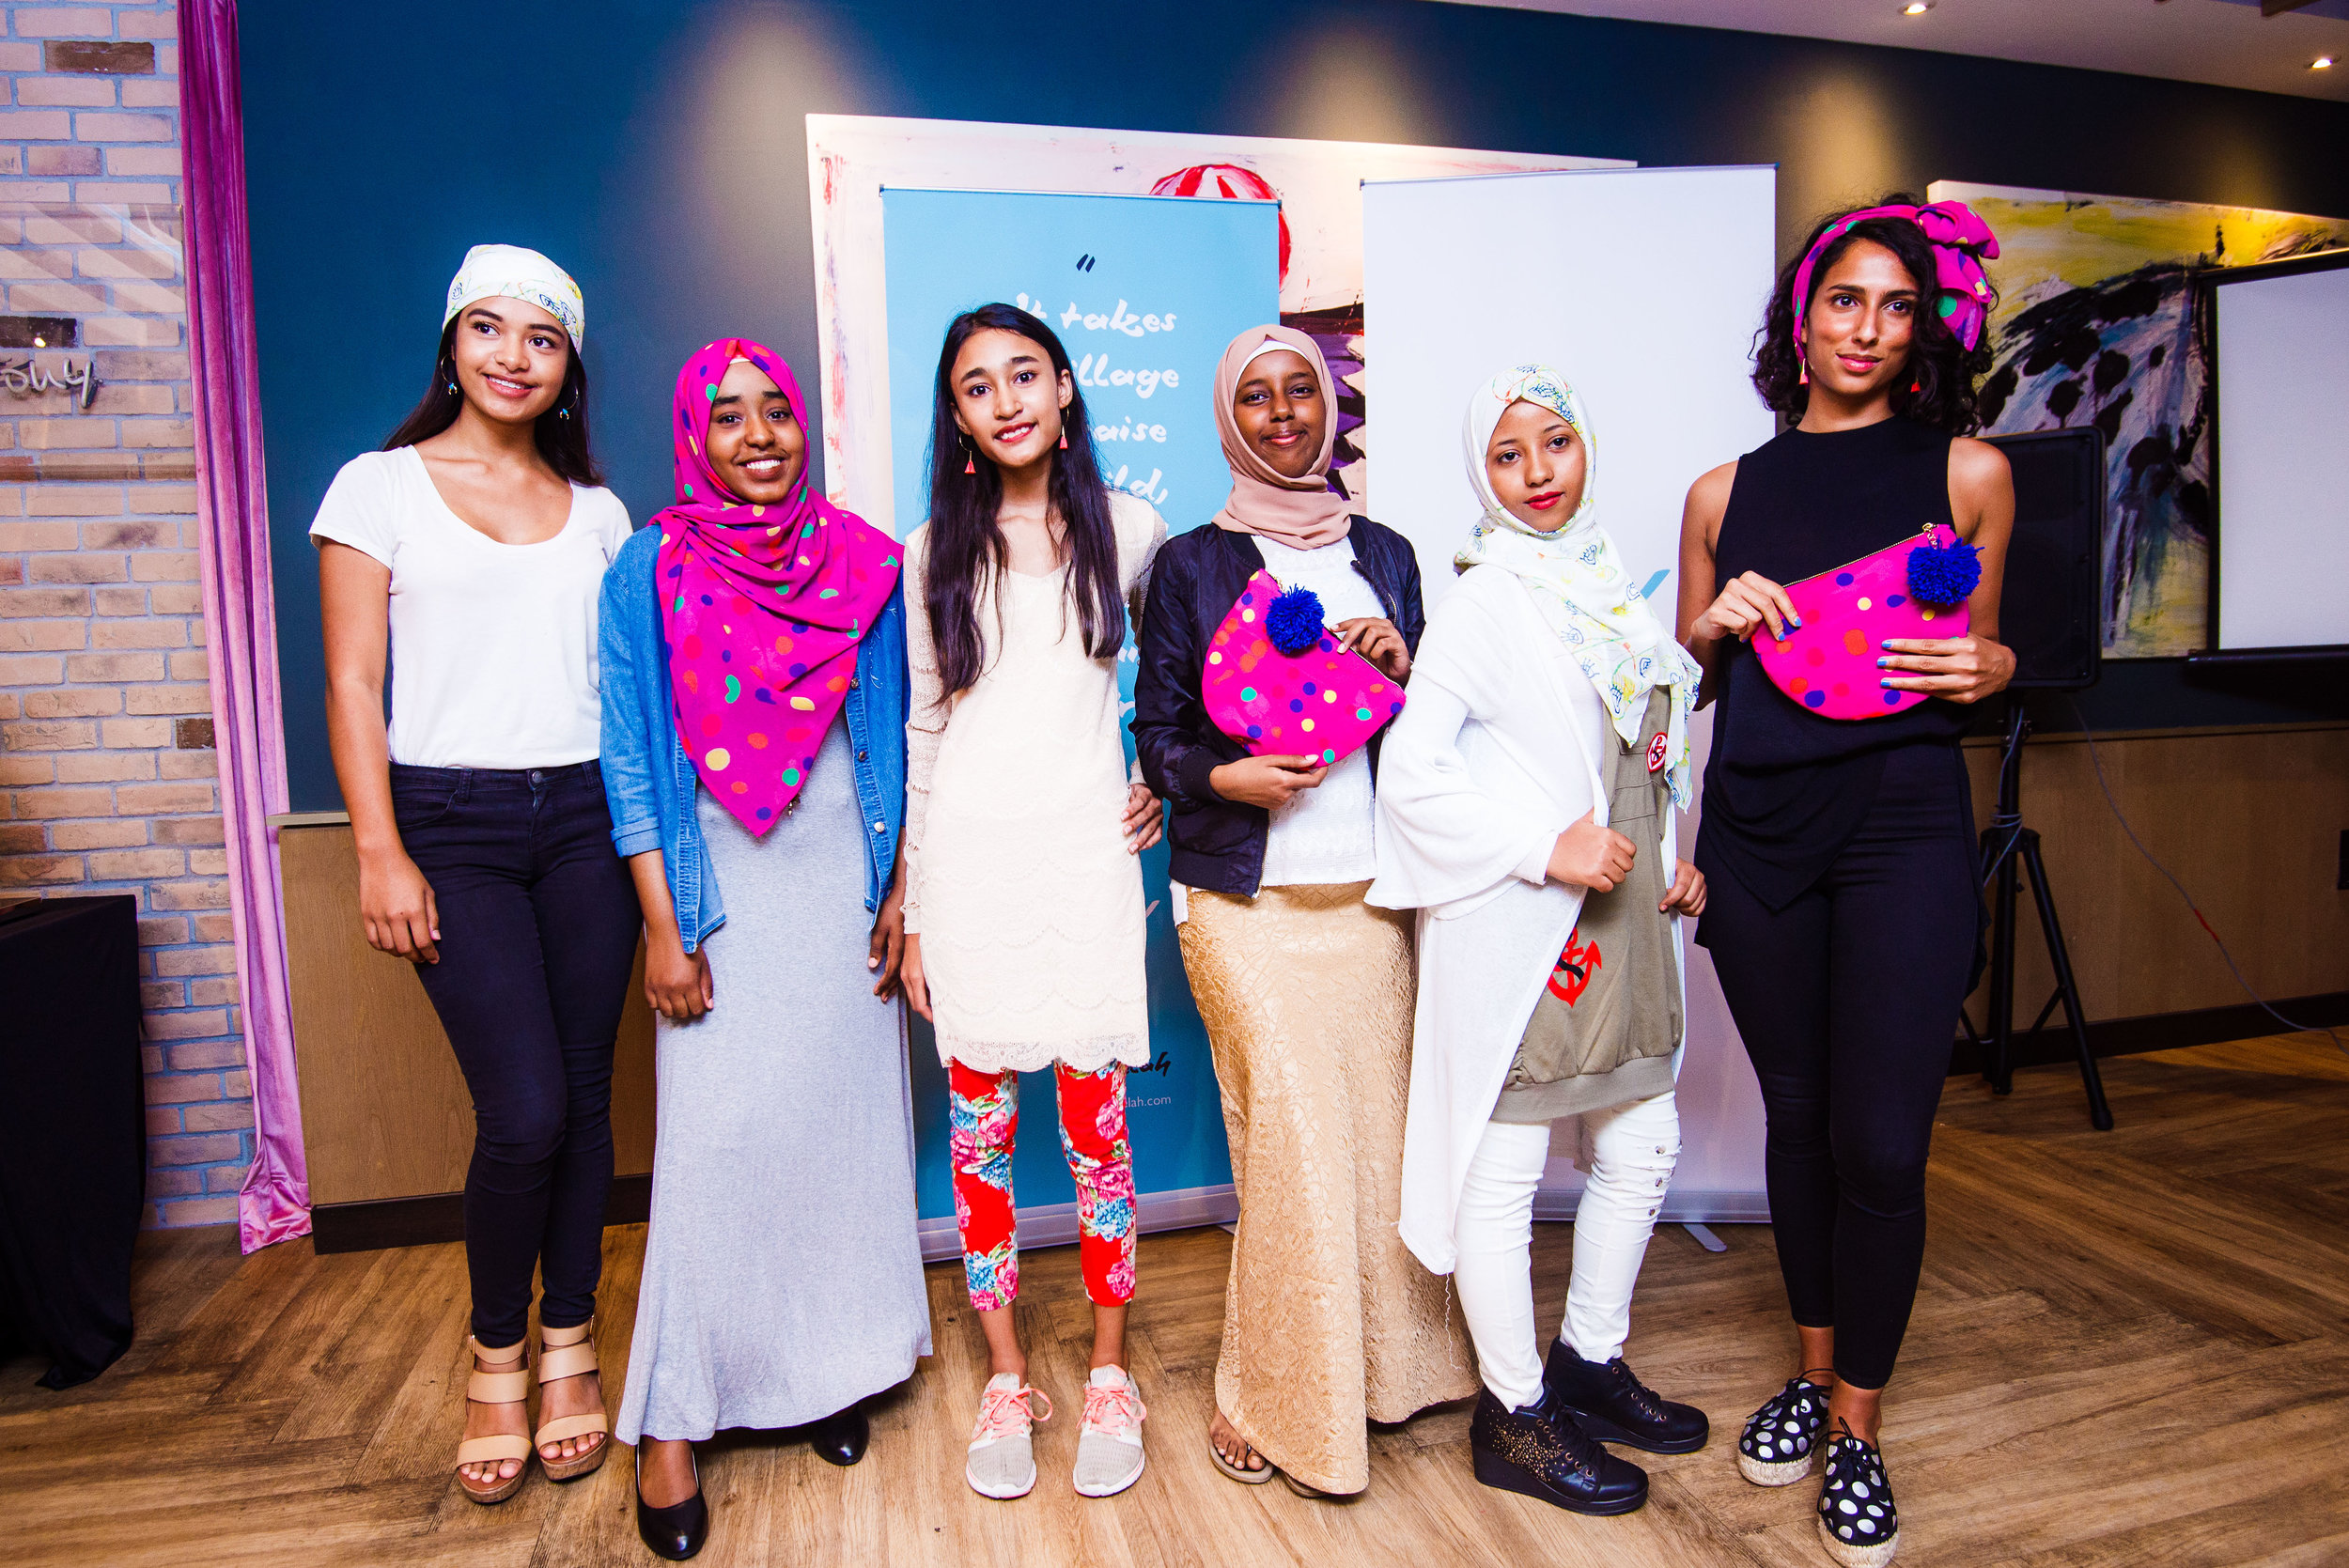 Some of the Fugee School students and Deborah's sister, Rachel, modeling the accessories at the Fugeelah launch!